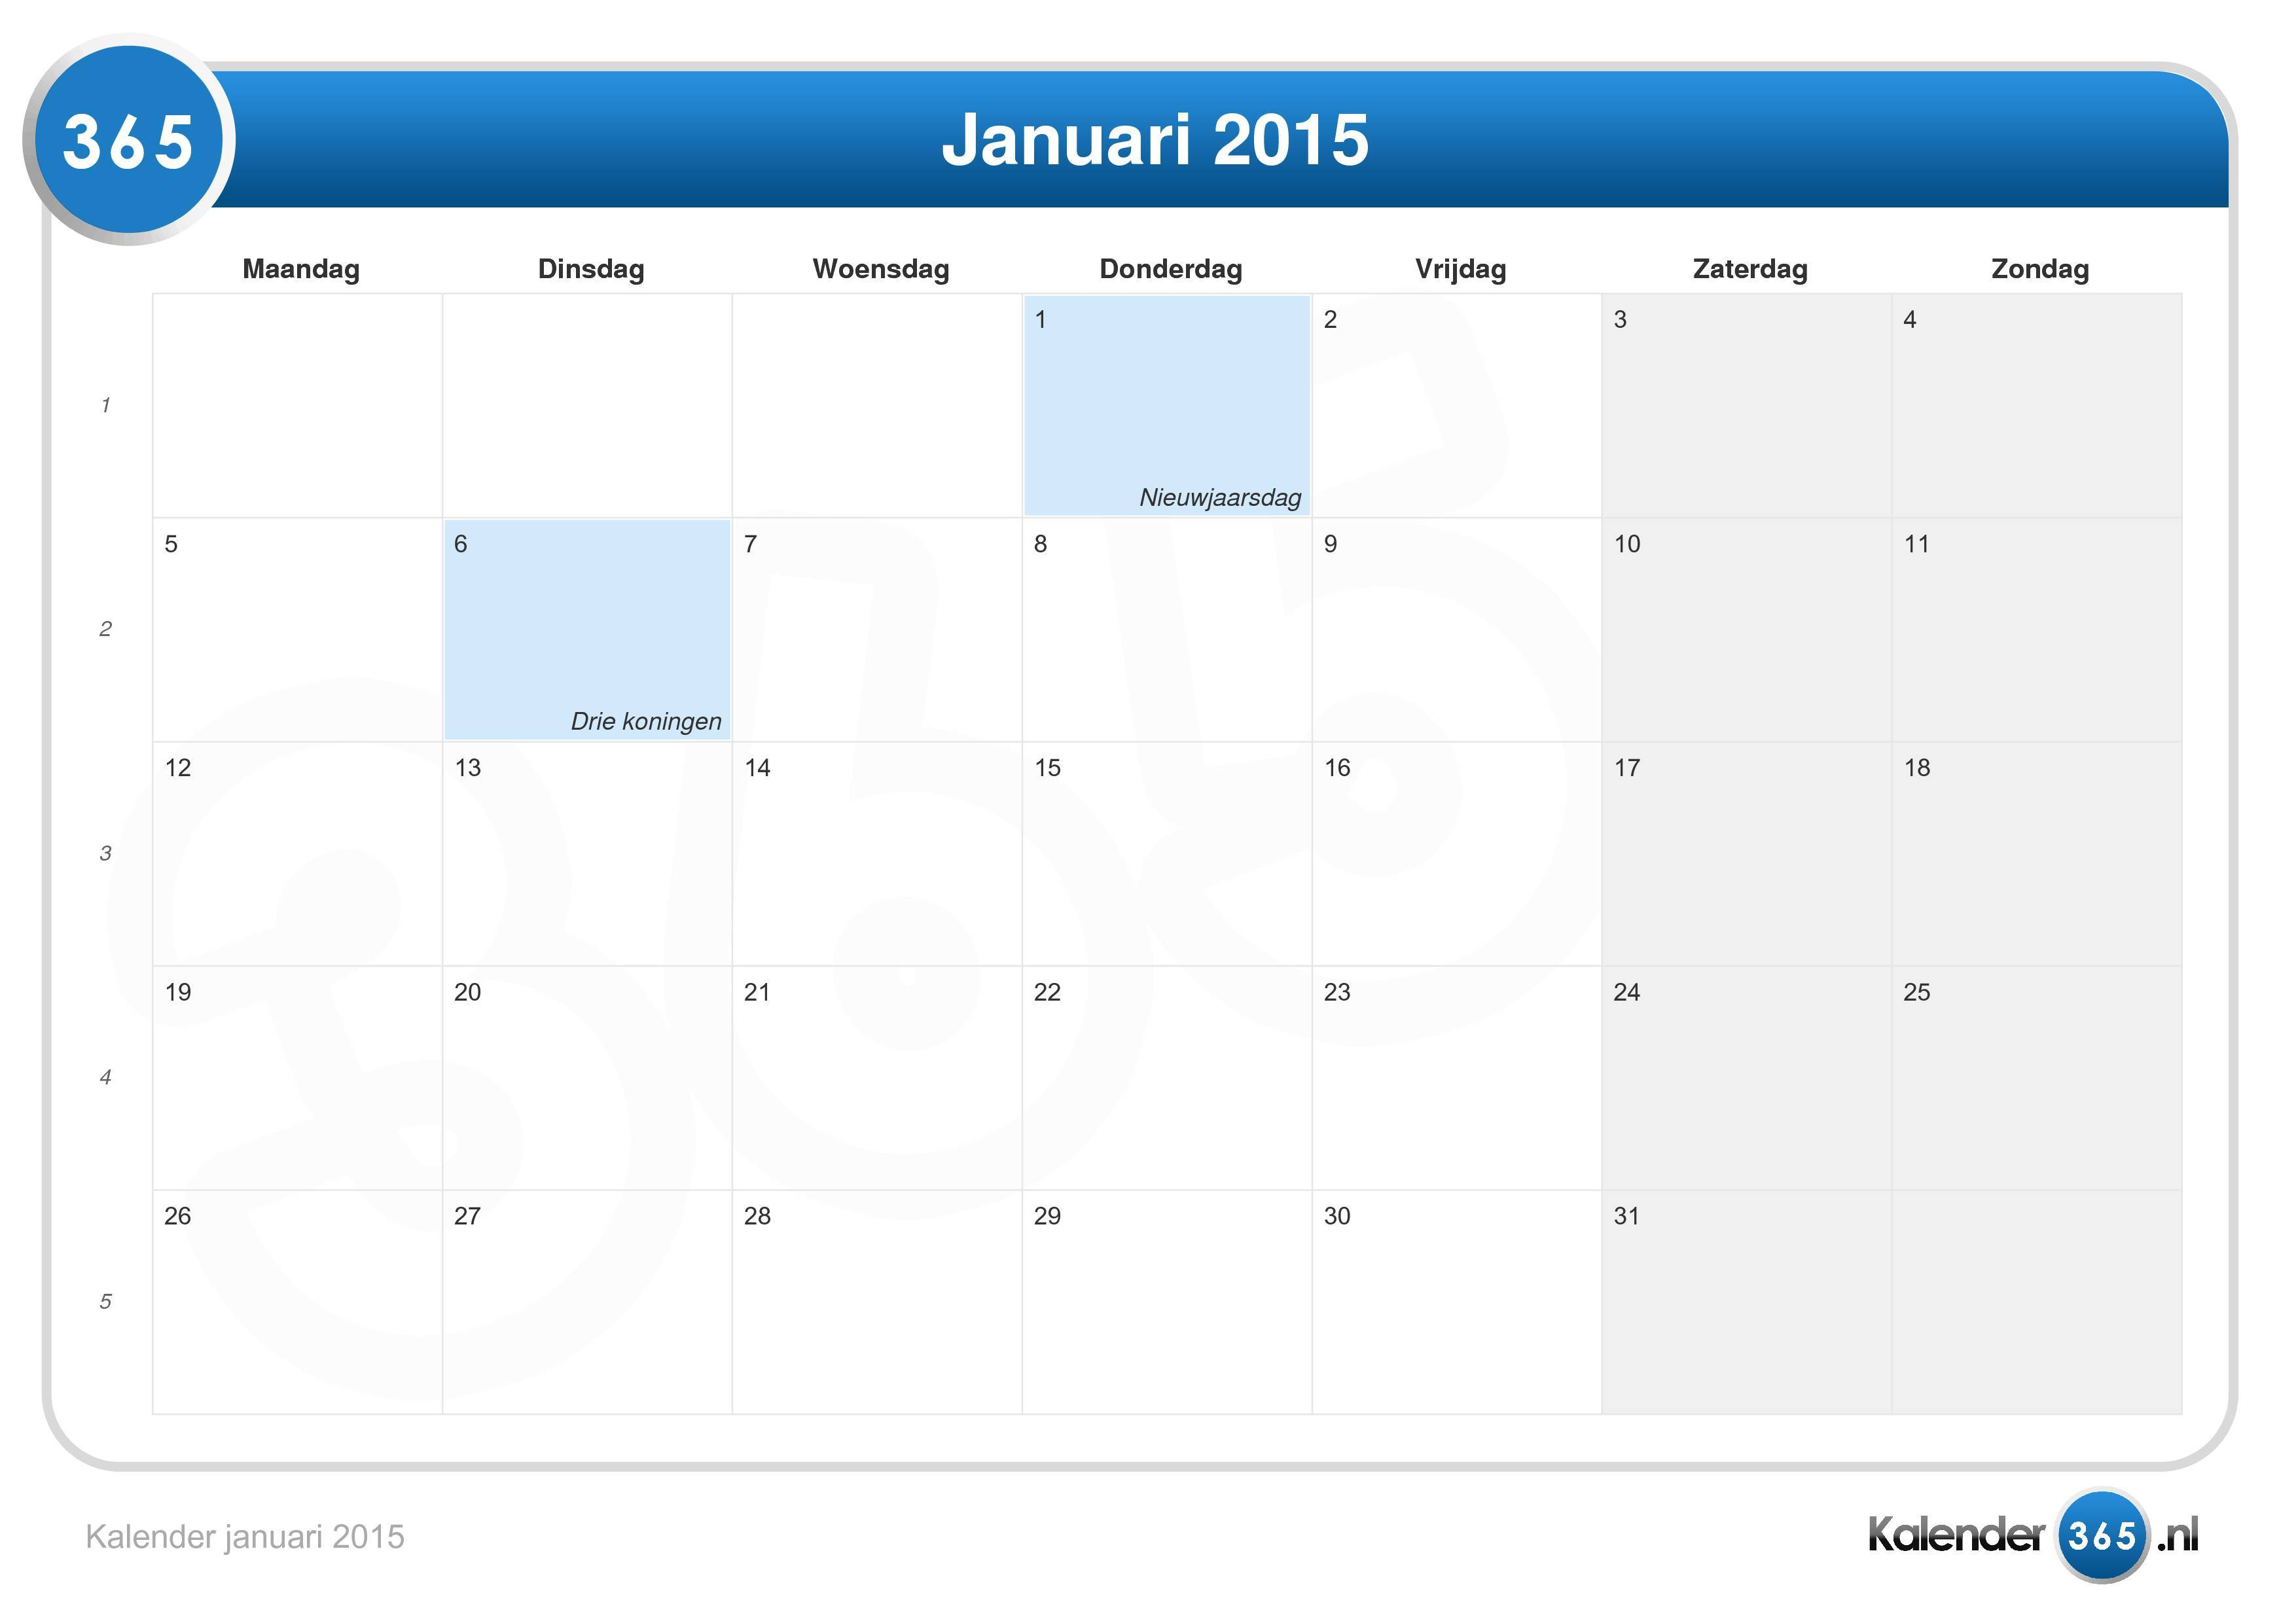 kalender jawa januari 2015 new calendar template site. Black Bedroom Furniture Sets. Home Design Ideas